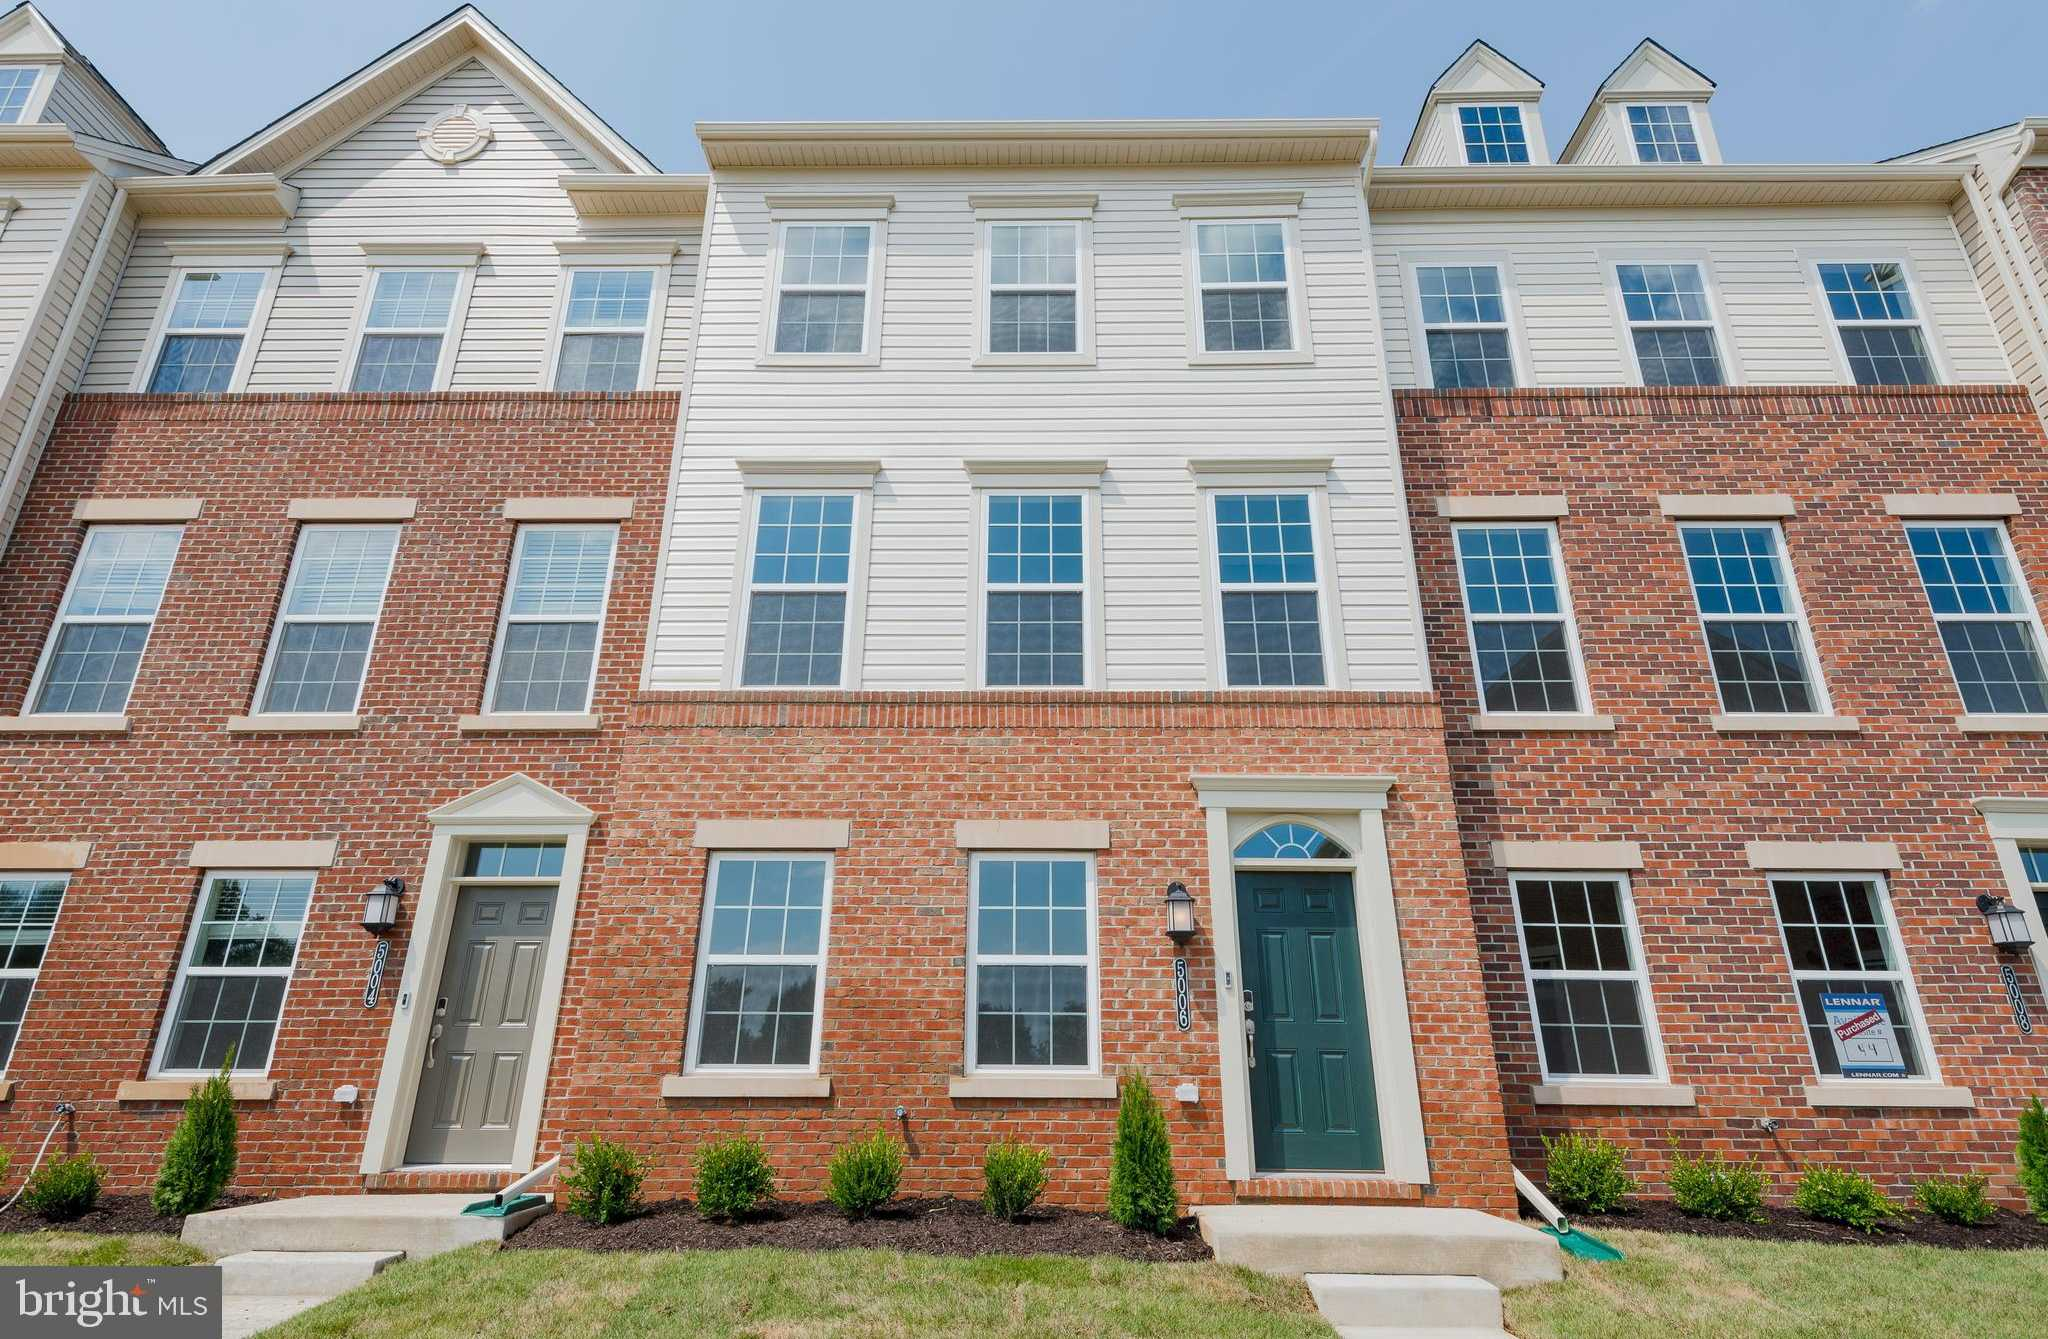 $364,990 - 3Br/4Ba -  for Sale in Strawbridge Commons, Perry Hall